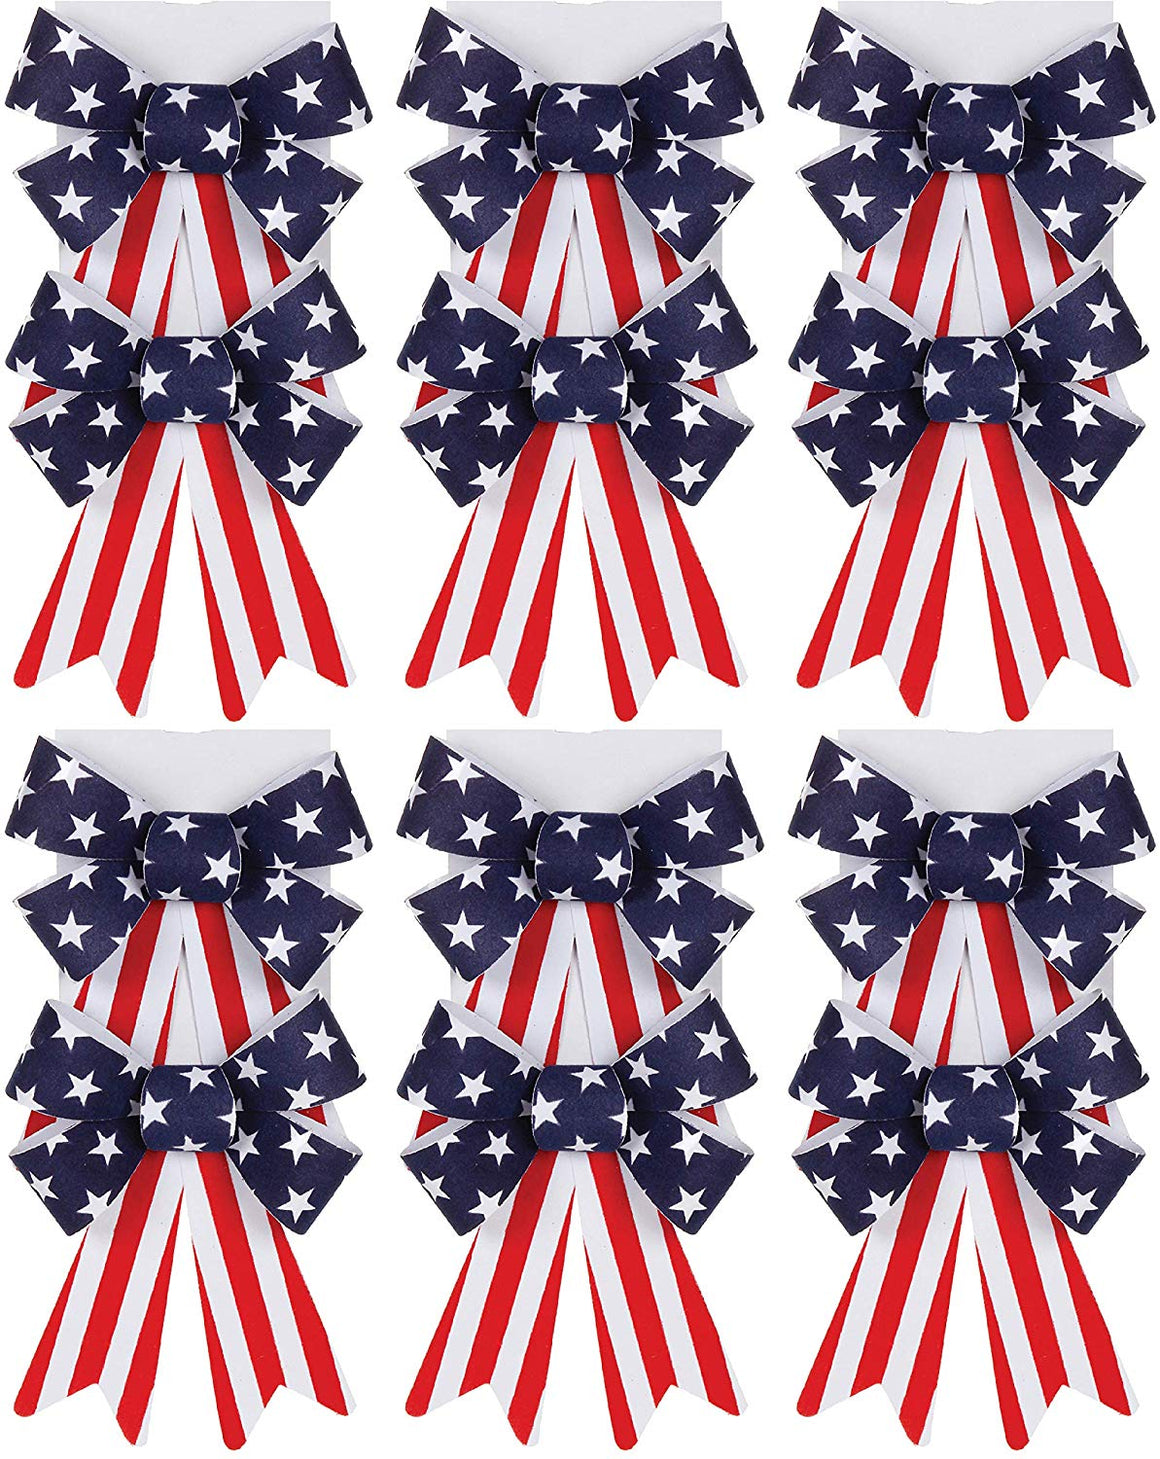 Dar Set of 12 American Flag Patriotic Bows 5.5 inches Wide x 6 Inches Long- Red, White and Blue Velvet Feel in Indoor/Outdoor Plastic